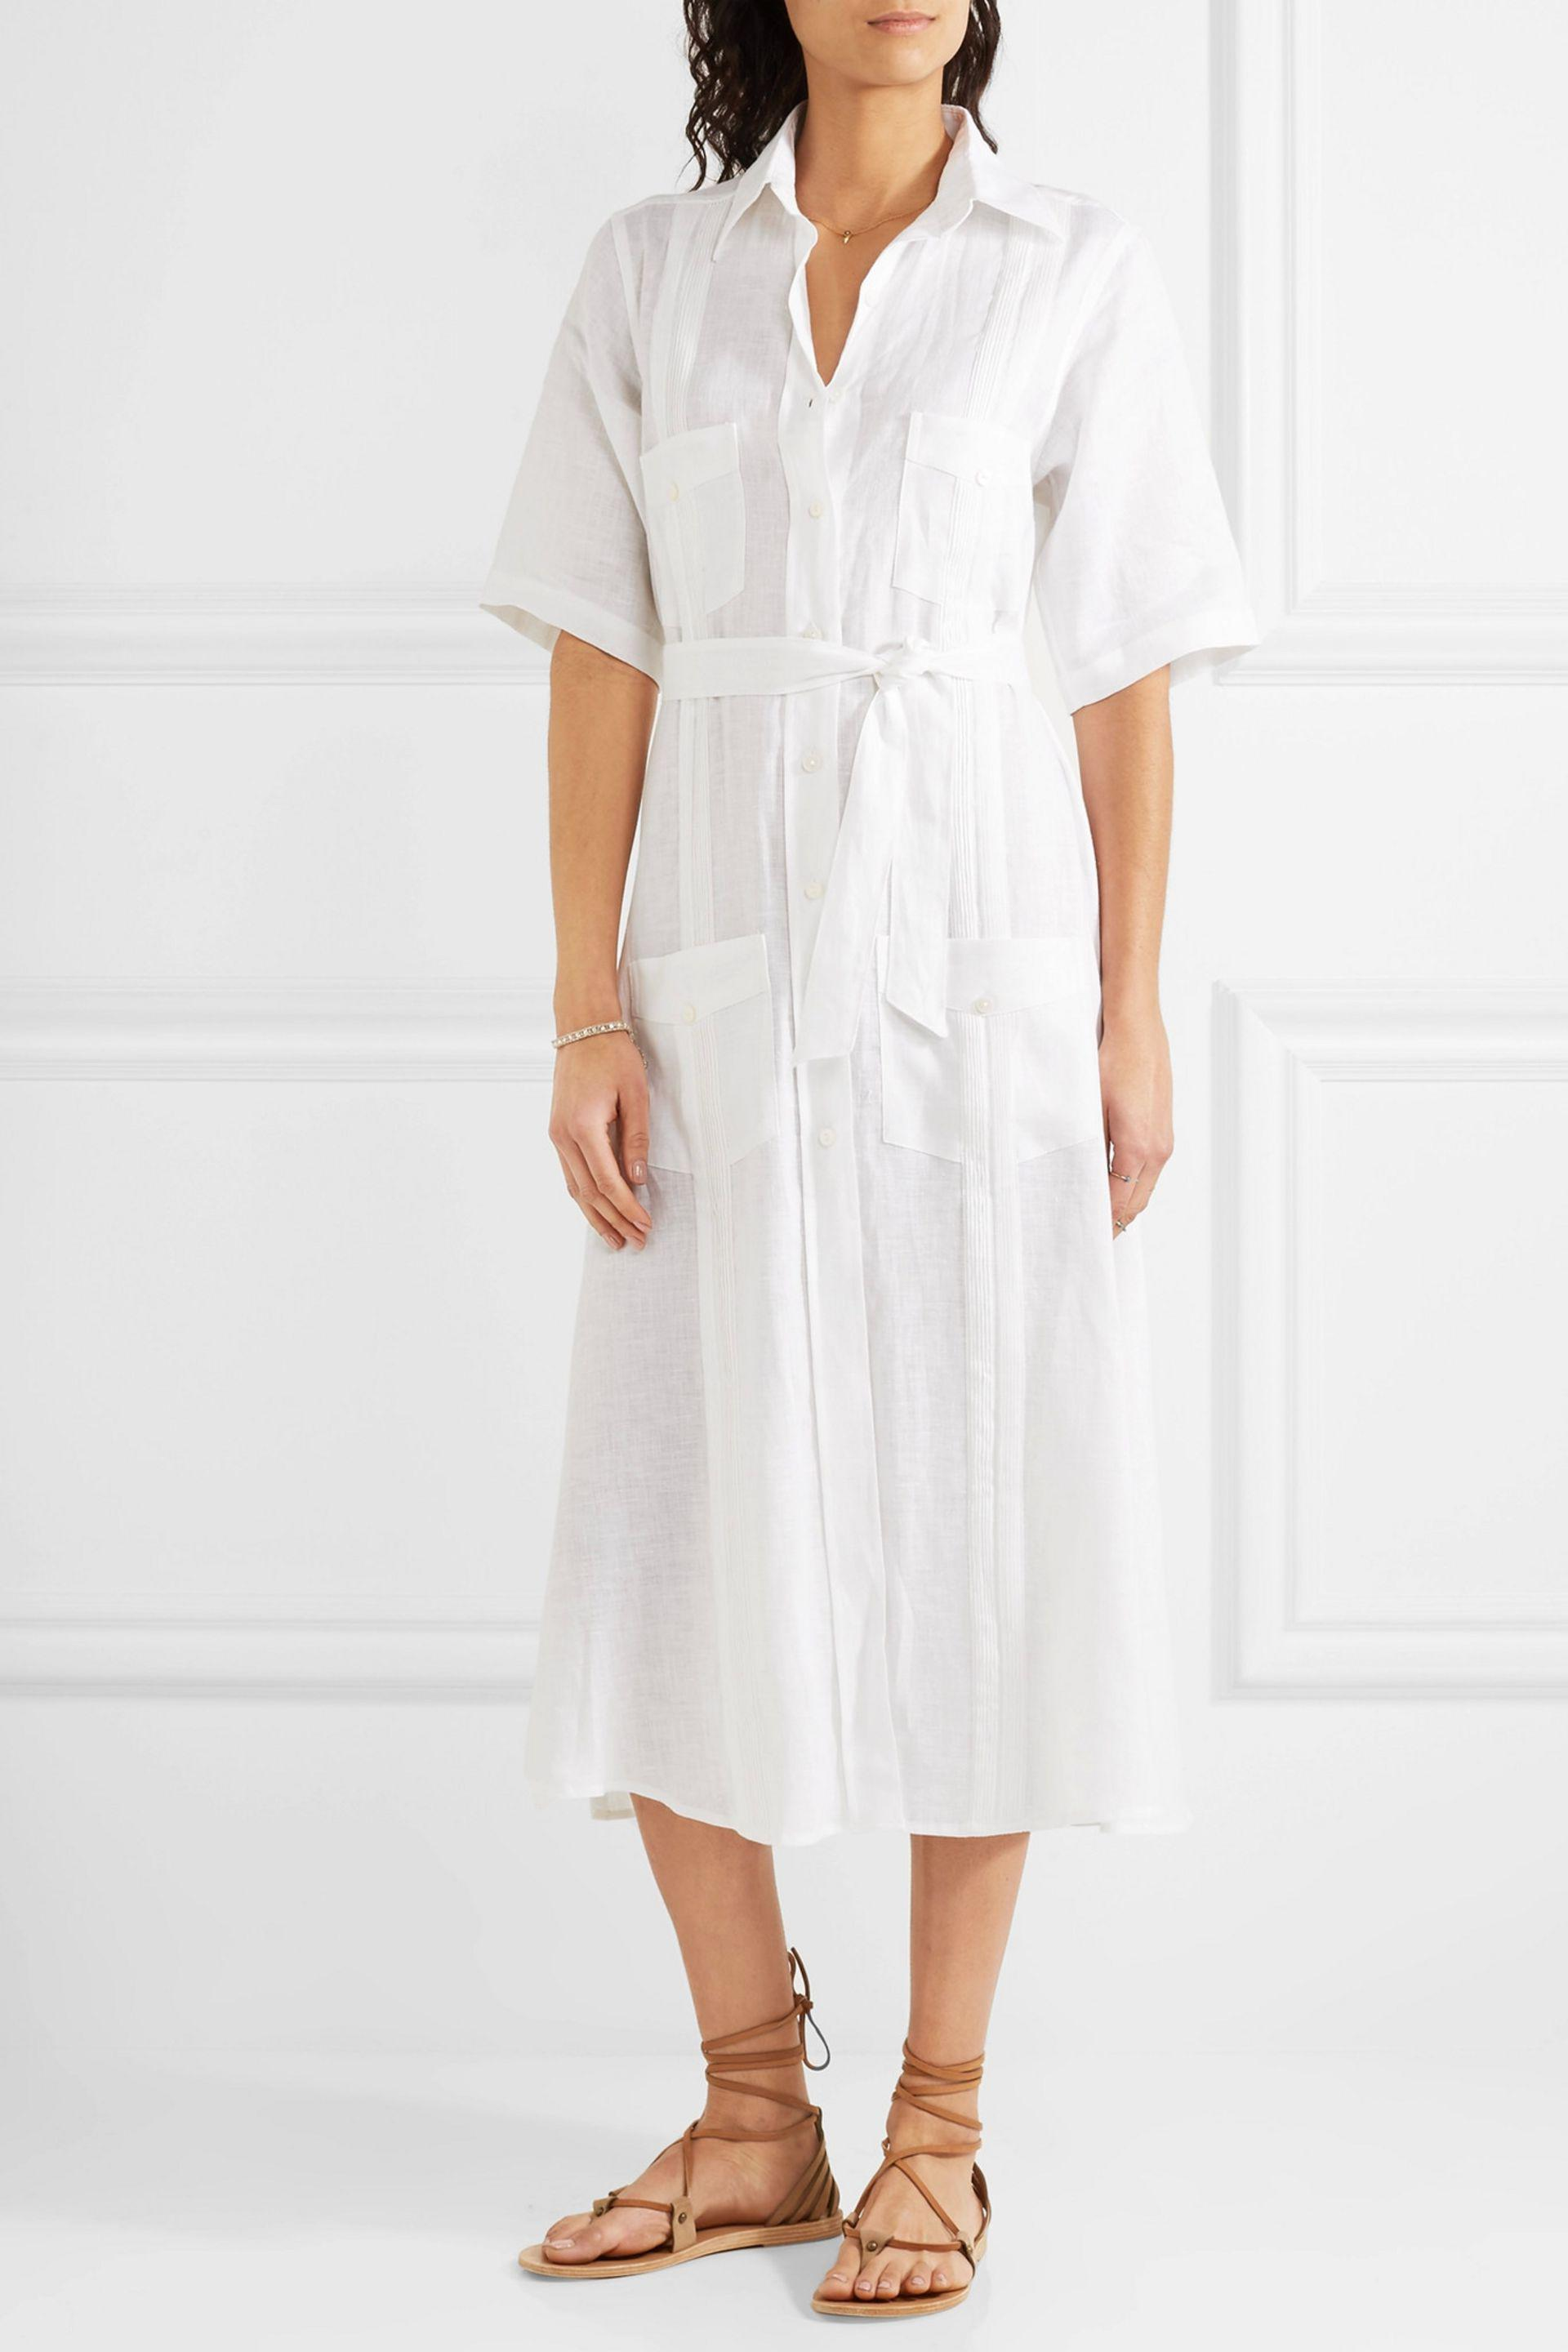 923262159c Miguelina Guayabera Linen Dress in White - Lyst